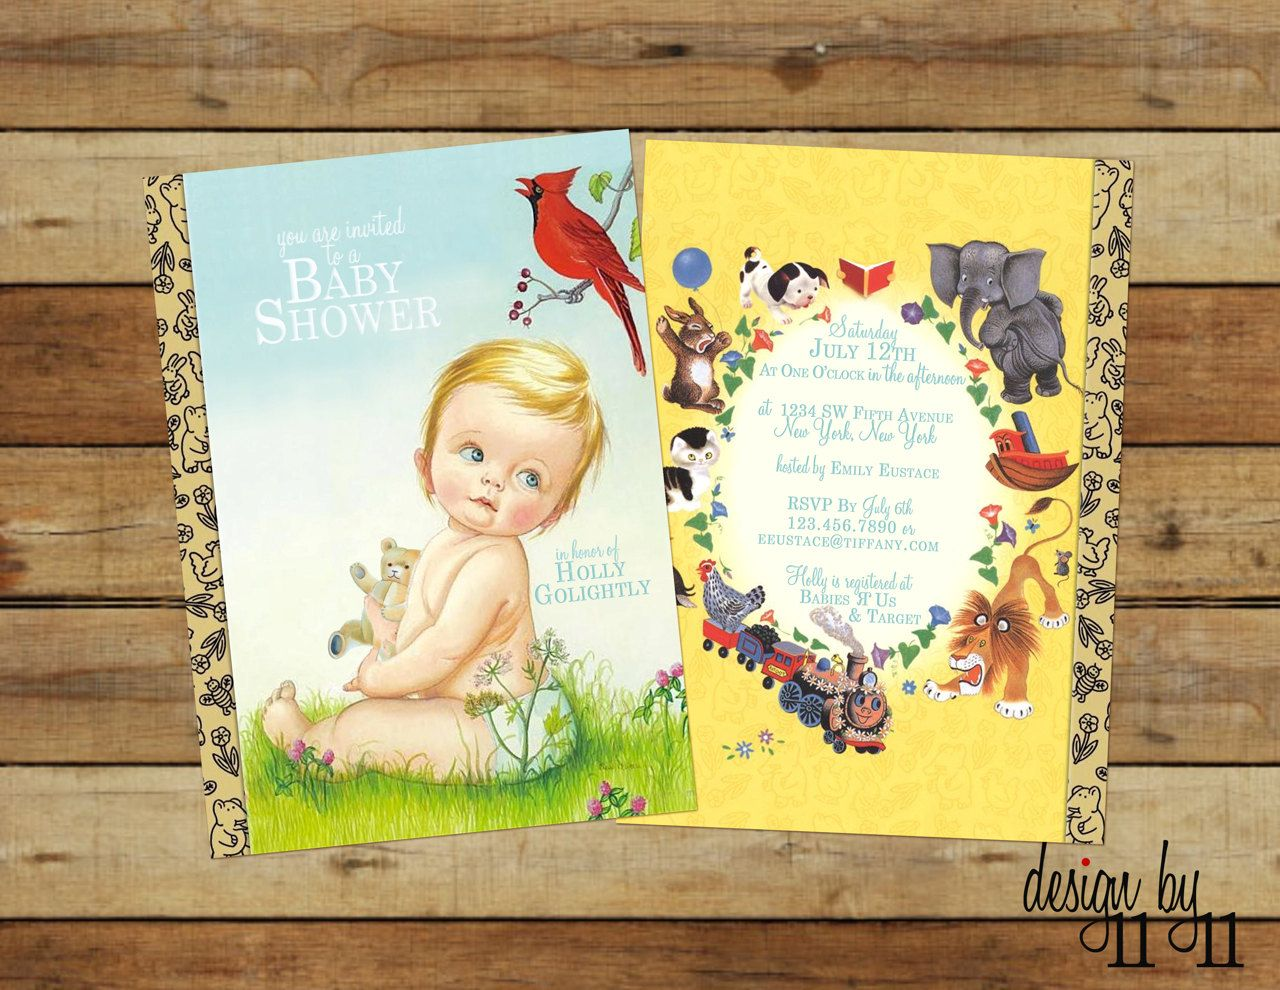 baby shower invitation wording for bringing diapers%0A Vintage Little Golden Book Baby Shower Invitation by designby